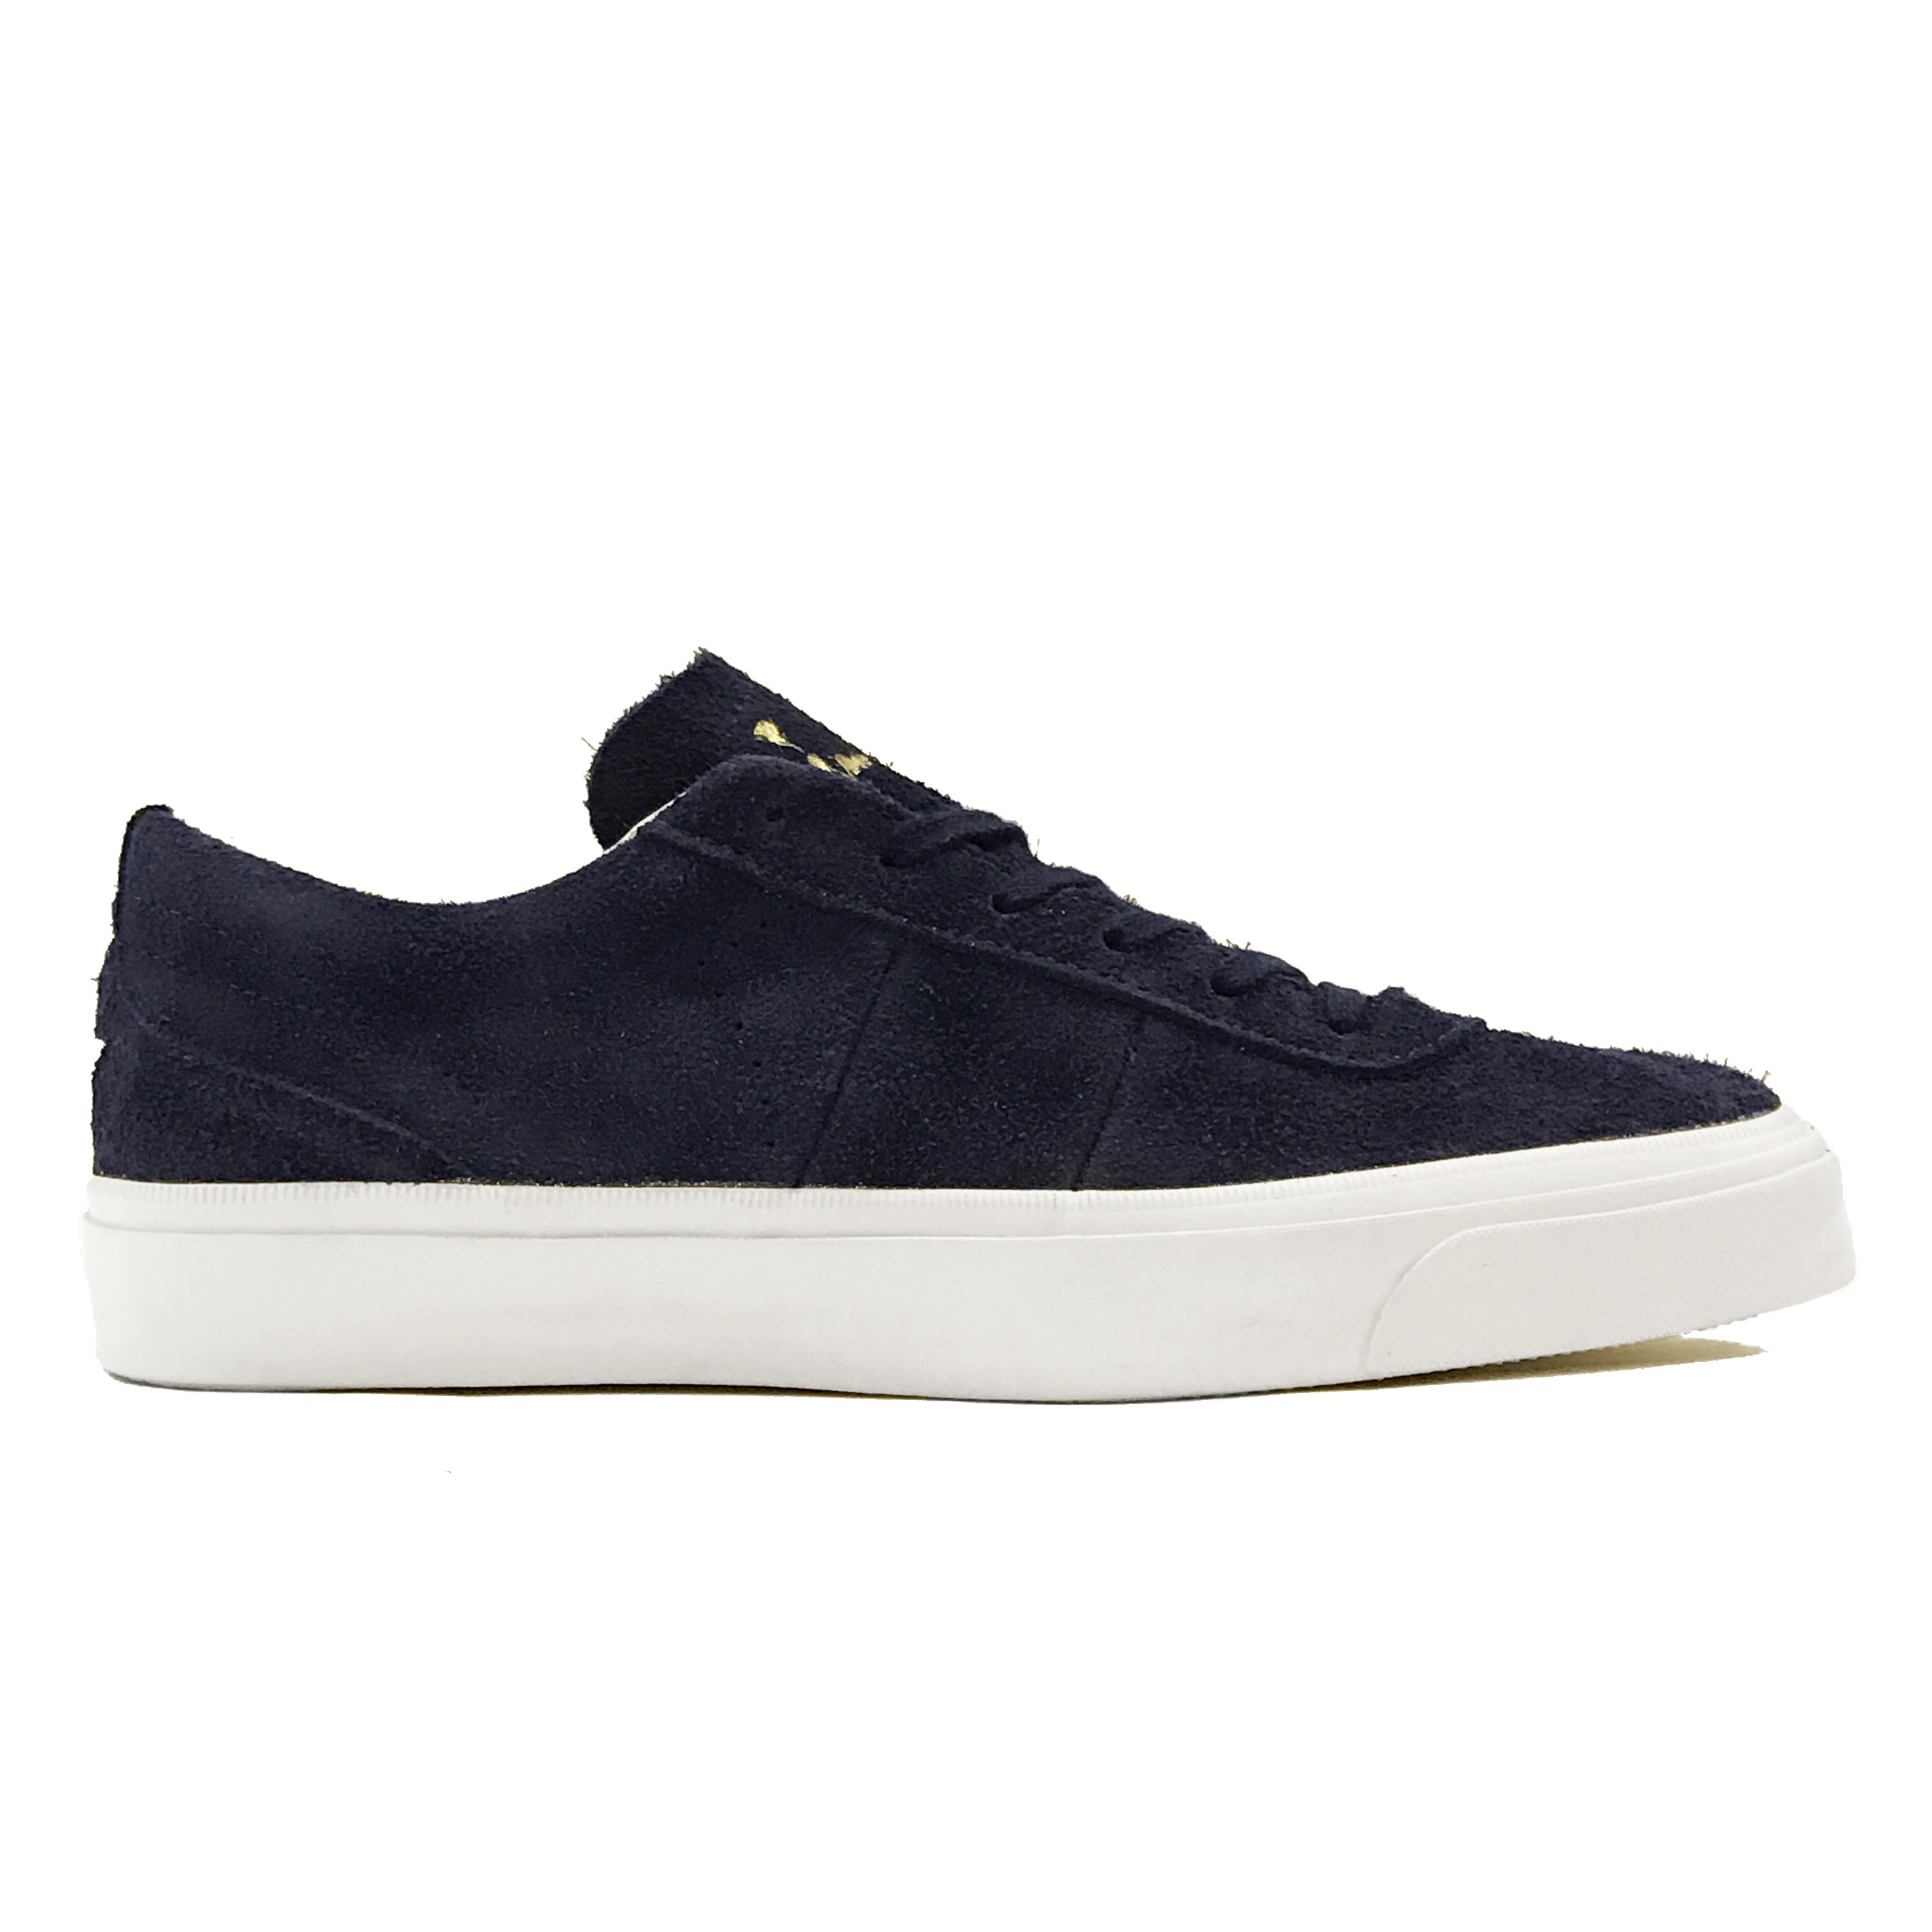 9e28abeea403 Converse Cons x Sage Elsesser One Star CC Pro. (Obsidian Obsidian Egret)